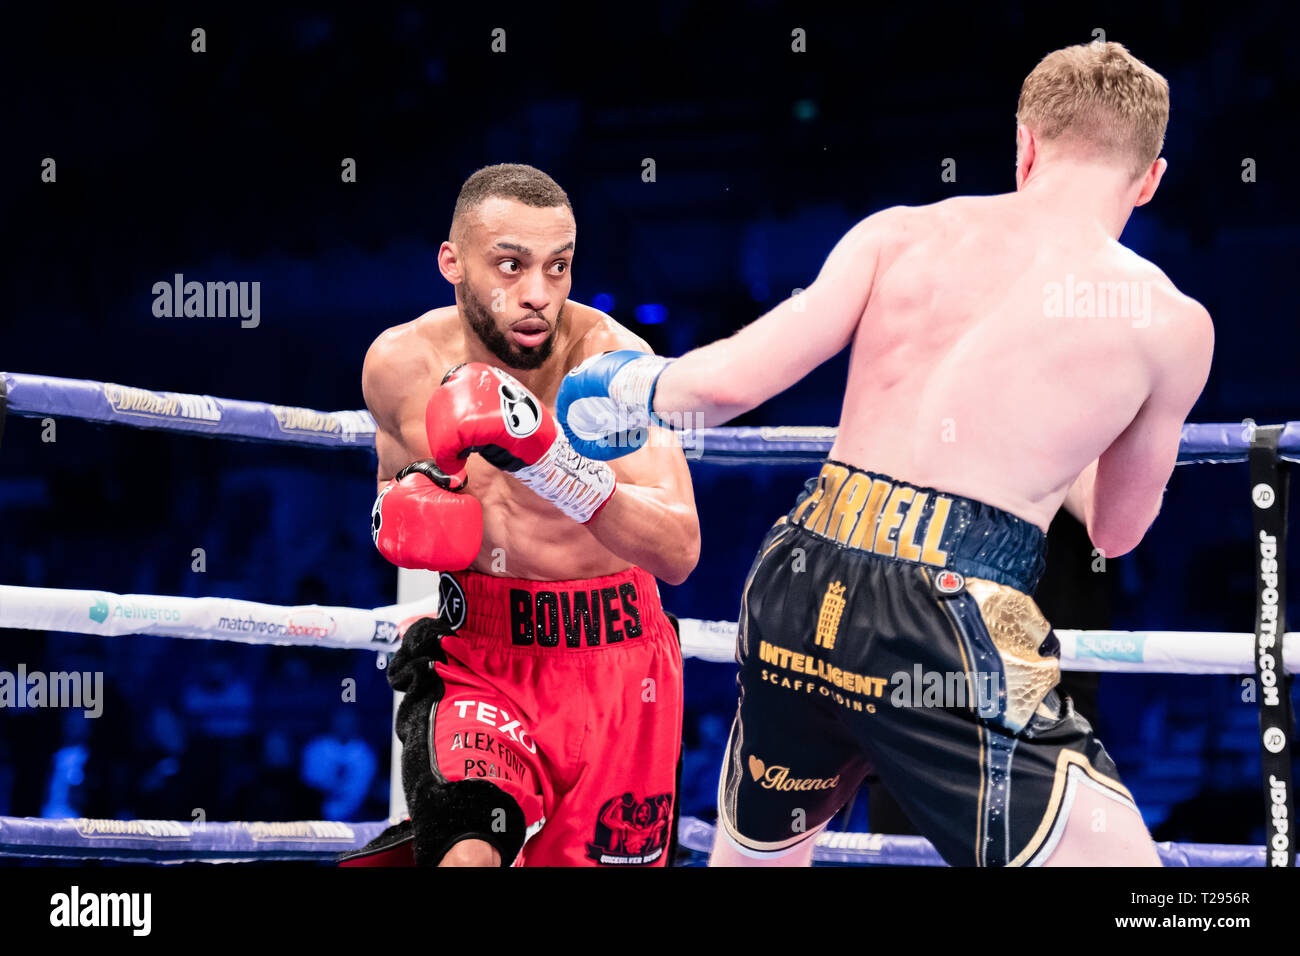 Liverpool, UK. 30th March 2019. Philip Bowes vs Tom Farrell - Commonwealth Super-Lightweight Championship during Liam Smith vs. Sam Eggington - WBC Silver Super-Welterweight Championship at M&S Bank Arena on Saturday, 30 March 2019. LIVERPOOL, ENGLAND. (Editorial use only, license required for commercial use. No use in betting, games or a single club/league/player publications.) Credit: Taka G Wu/Alamy News - Stock Image